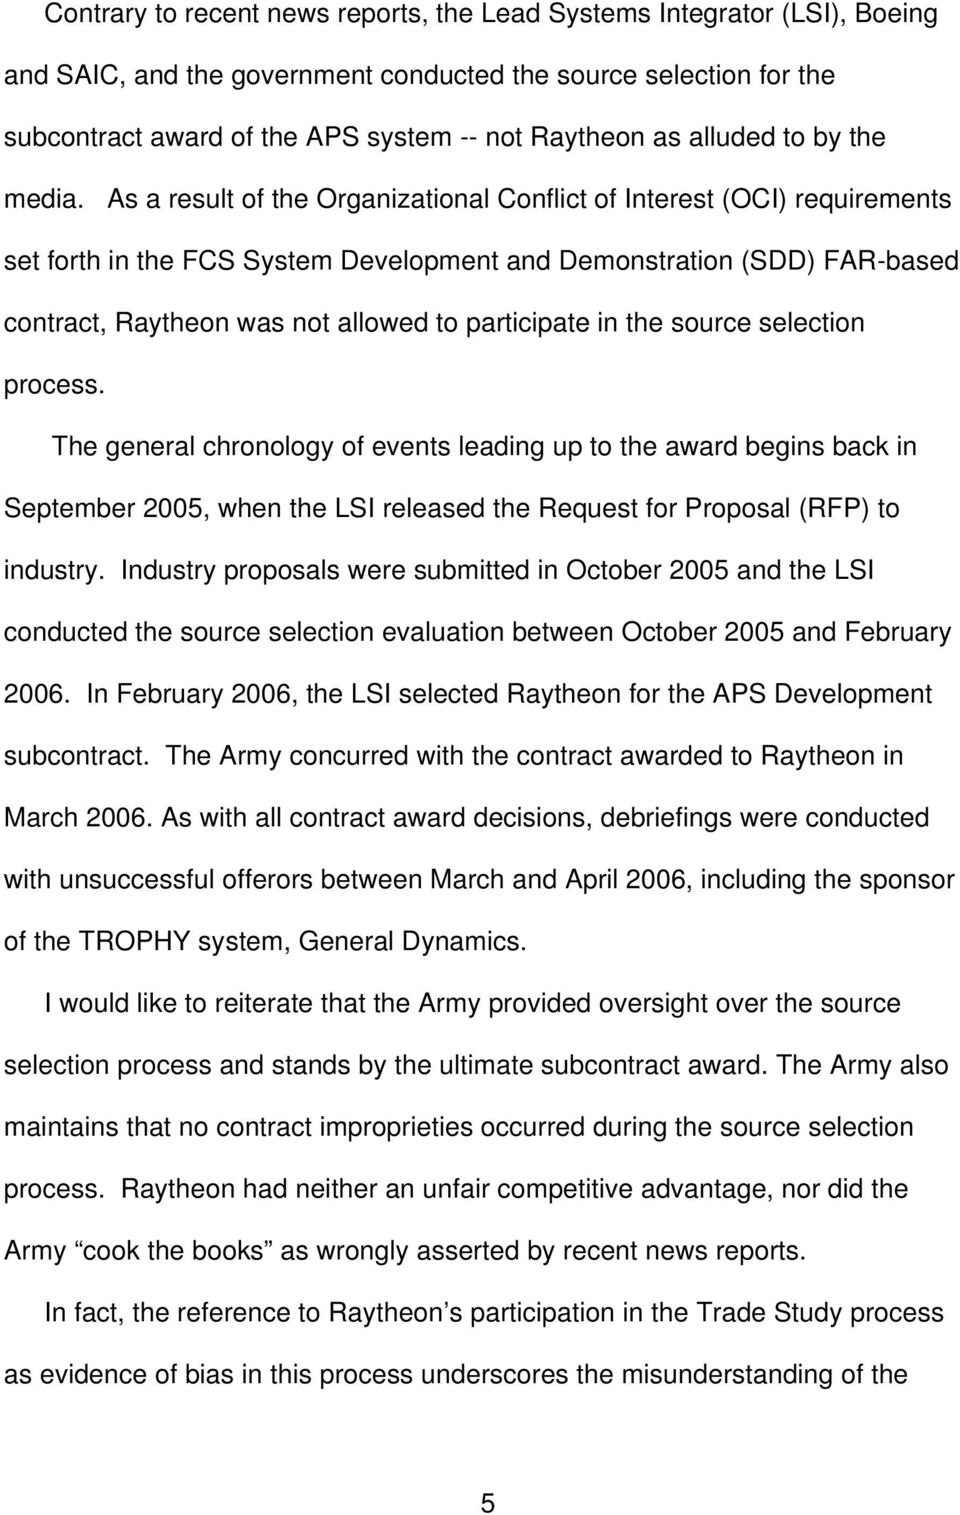 As a result of the Organizational Conflict of Interest (OCI) requirements set forth in the FCS System Development and Demonstration (SDD) FAR-based contract, Raytheon was not allowed to participate